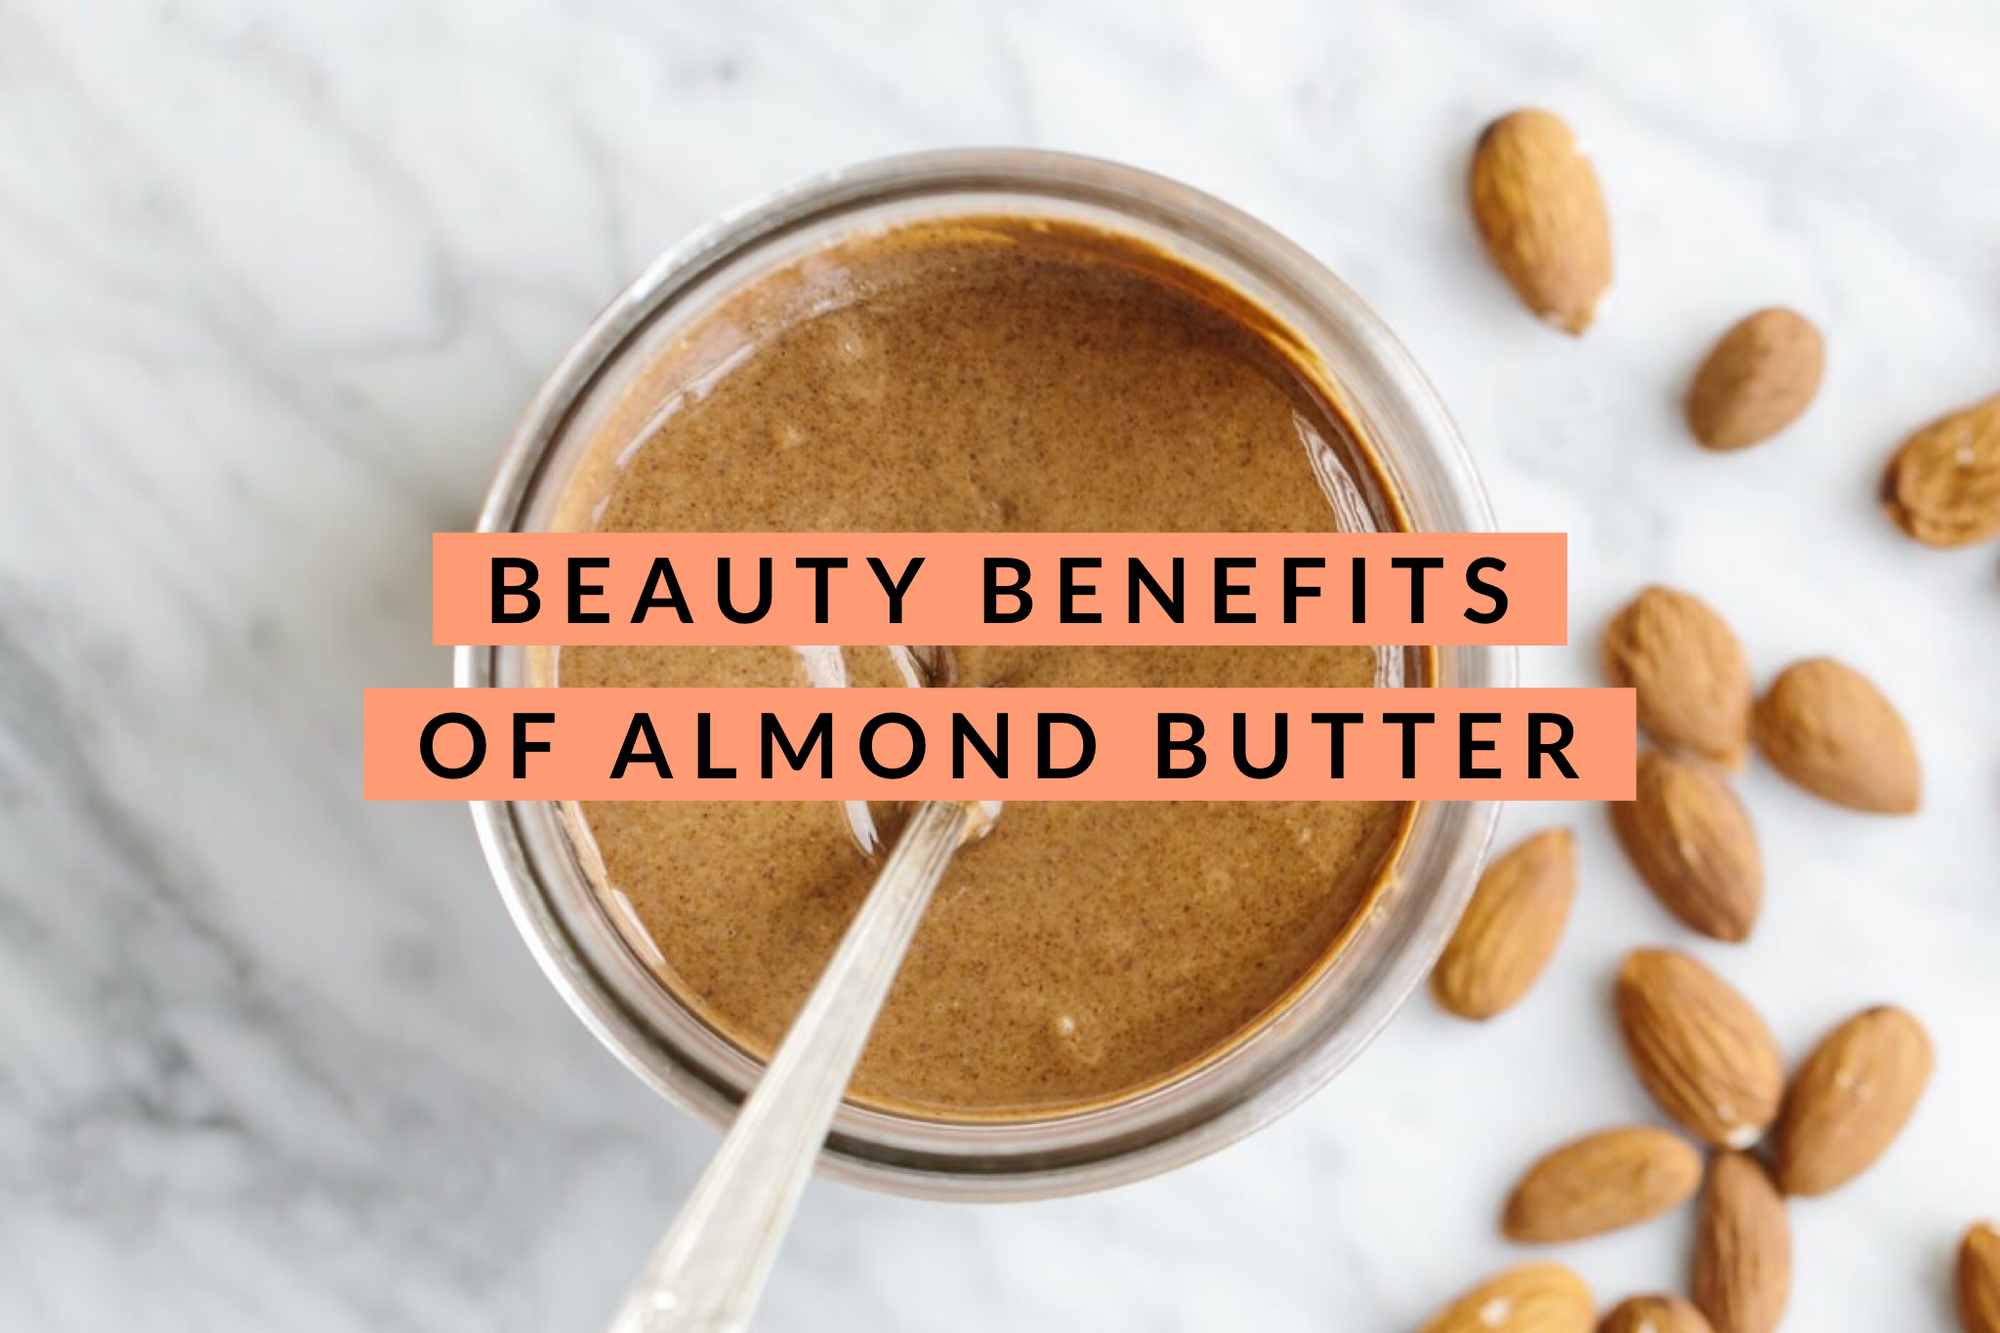 Beauty Benefits of Almond Butter